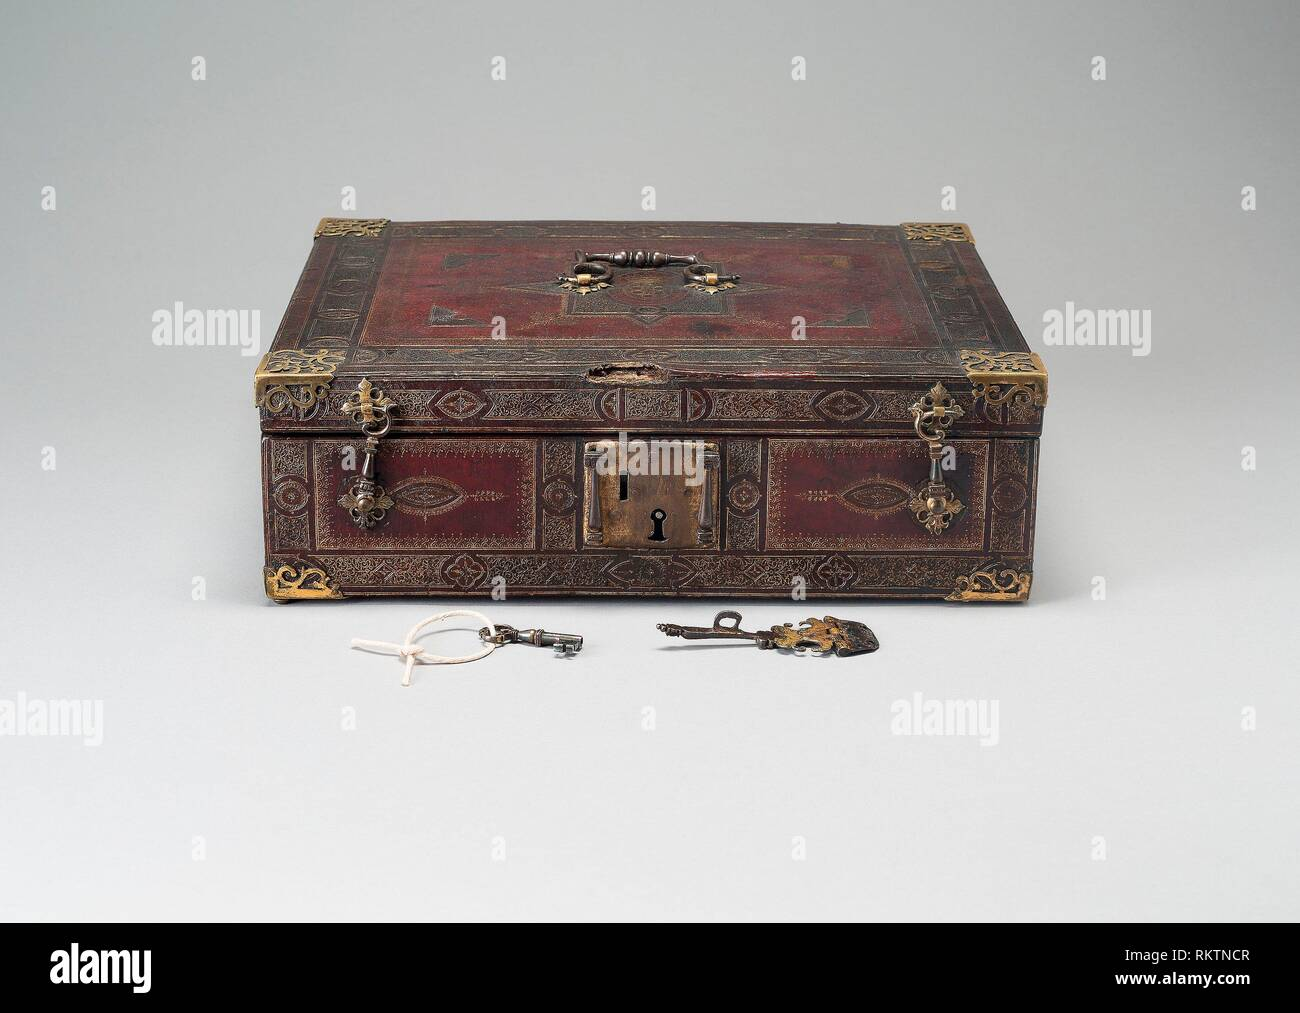 Box - 1600/50 - Florence, Italy - Origin: Florence, Date: 1600-1650, Medium: Leather, tooled and gilded; silk, velvet, and metal mounts, Dimensions: - Stock Image